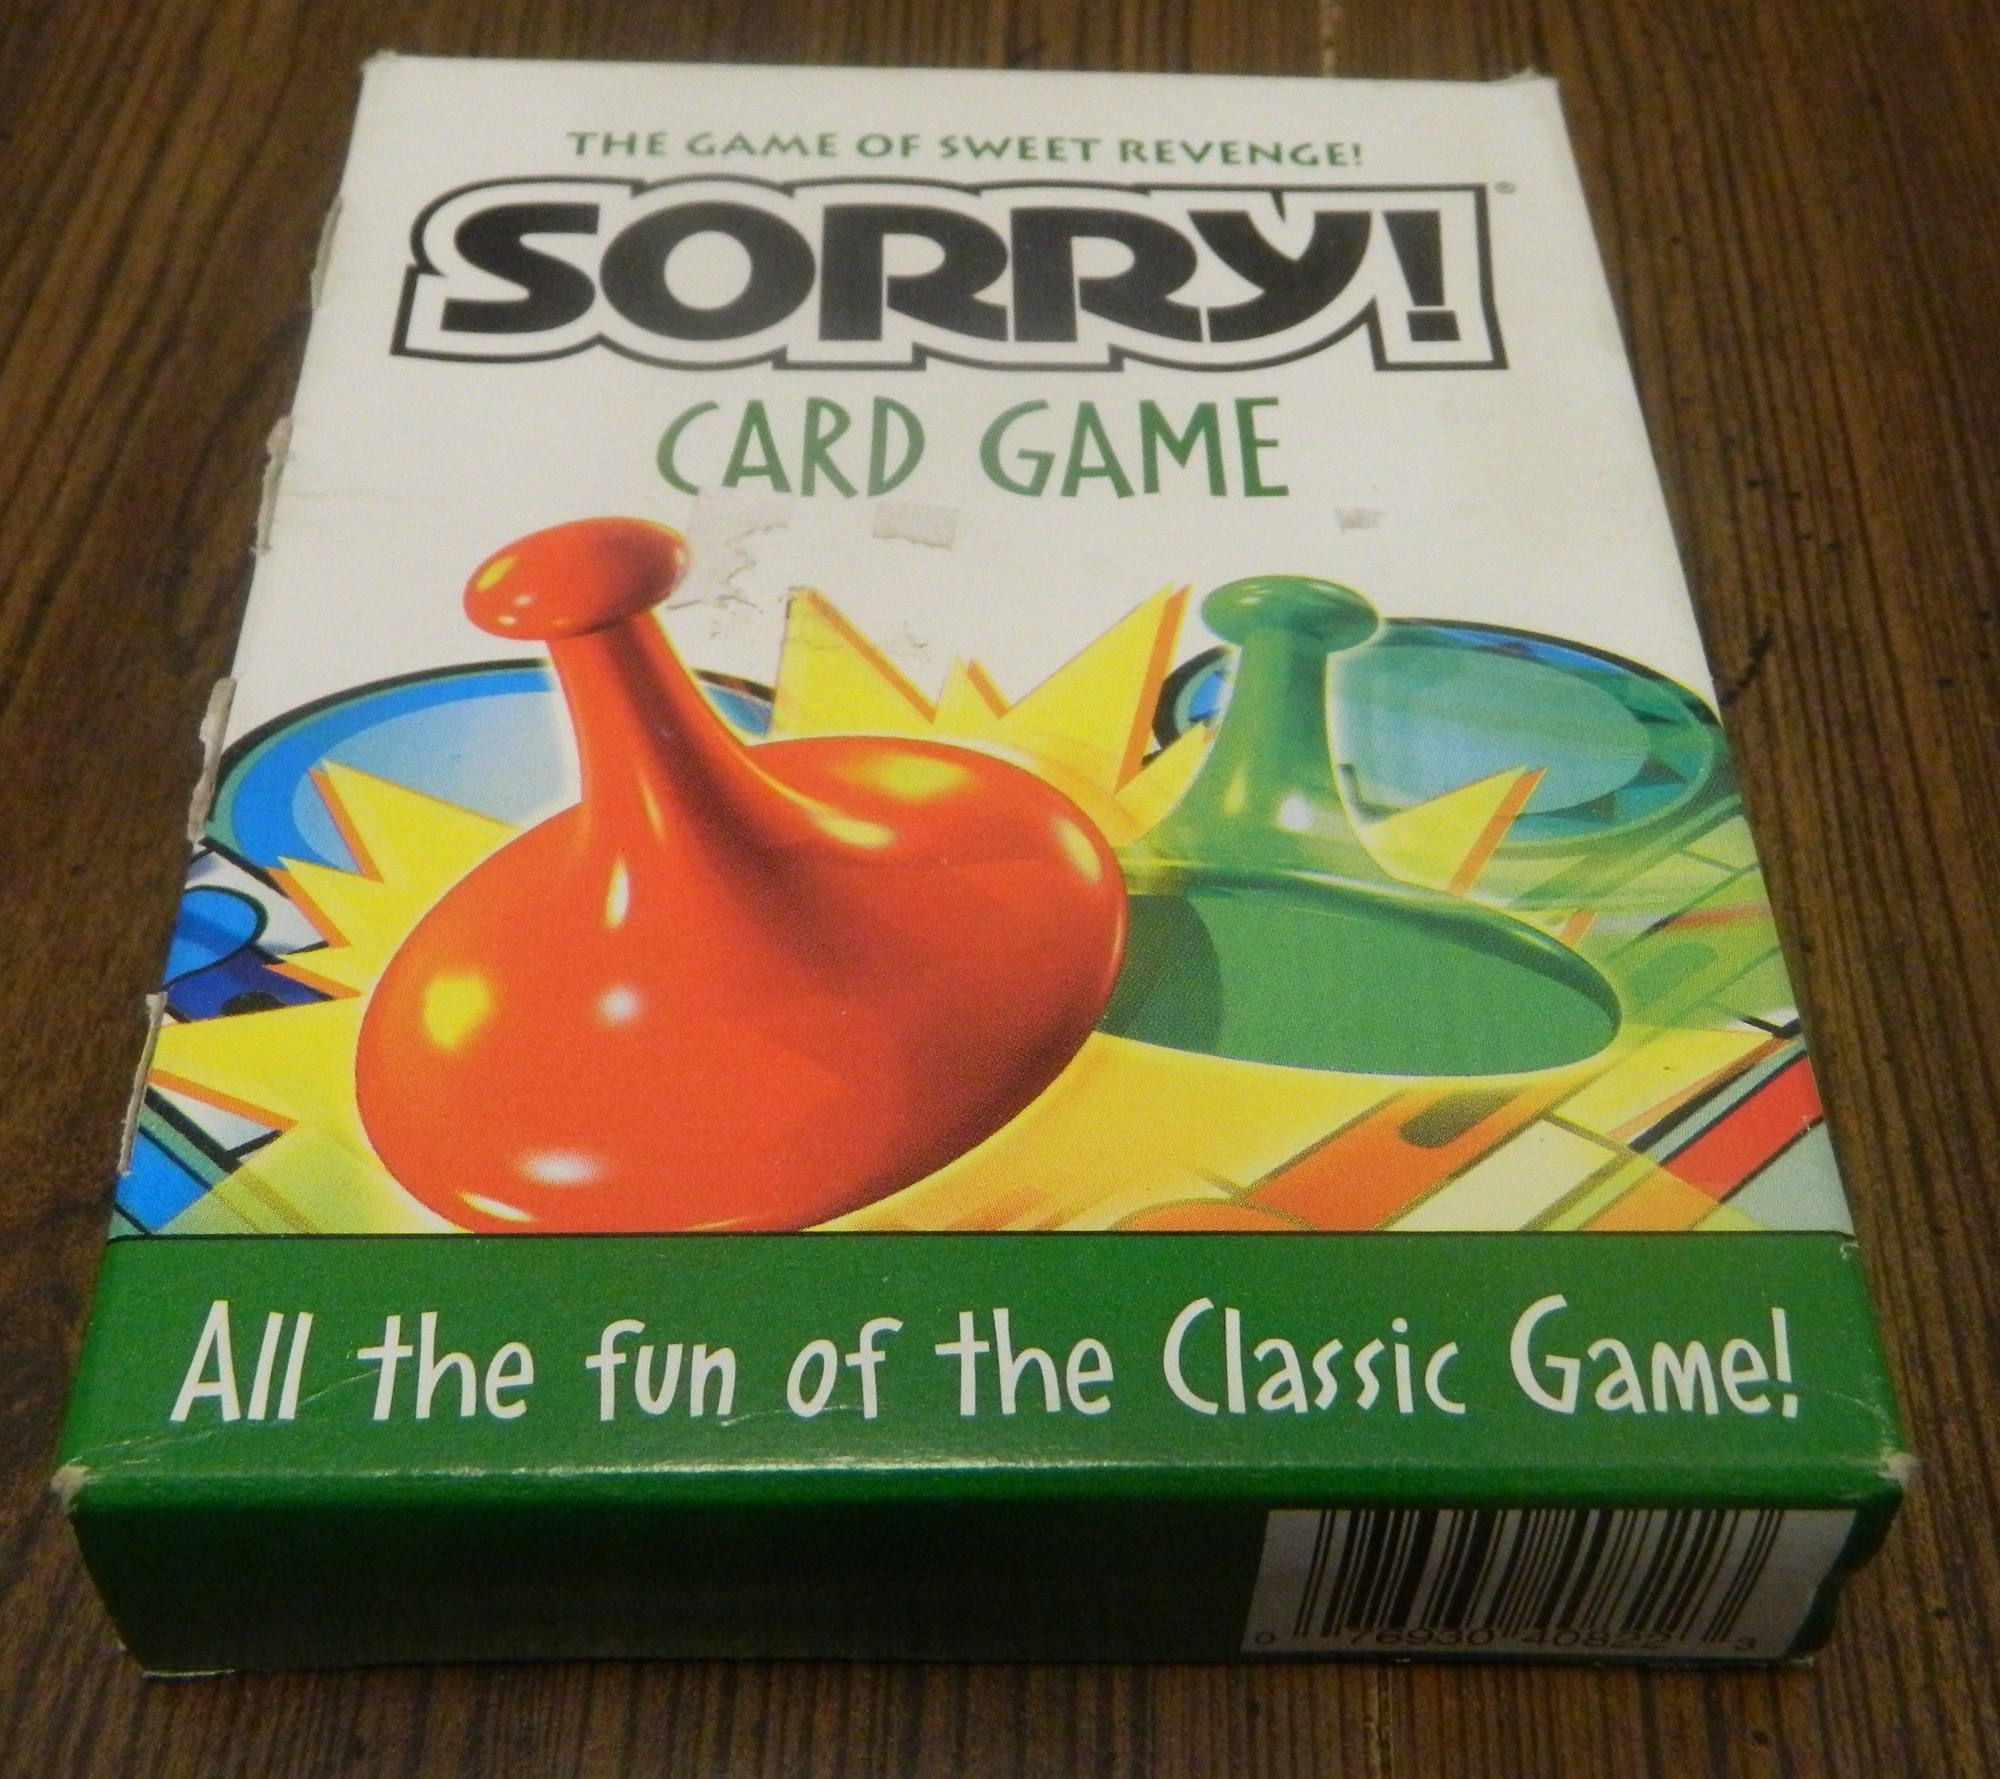 Sorry Card Game Box